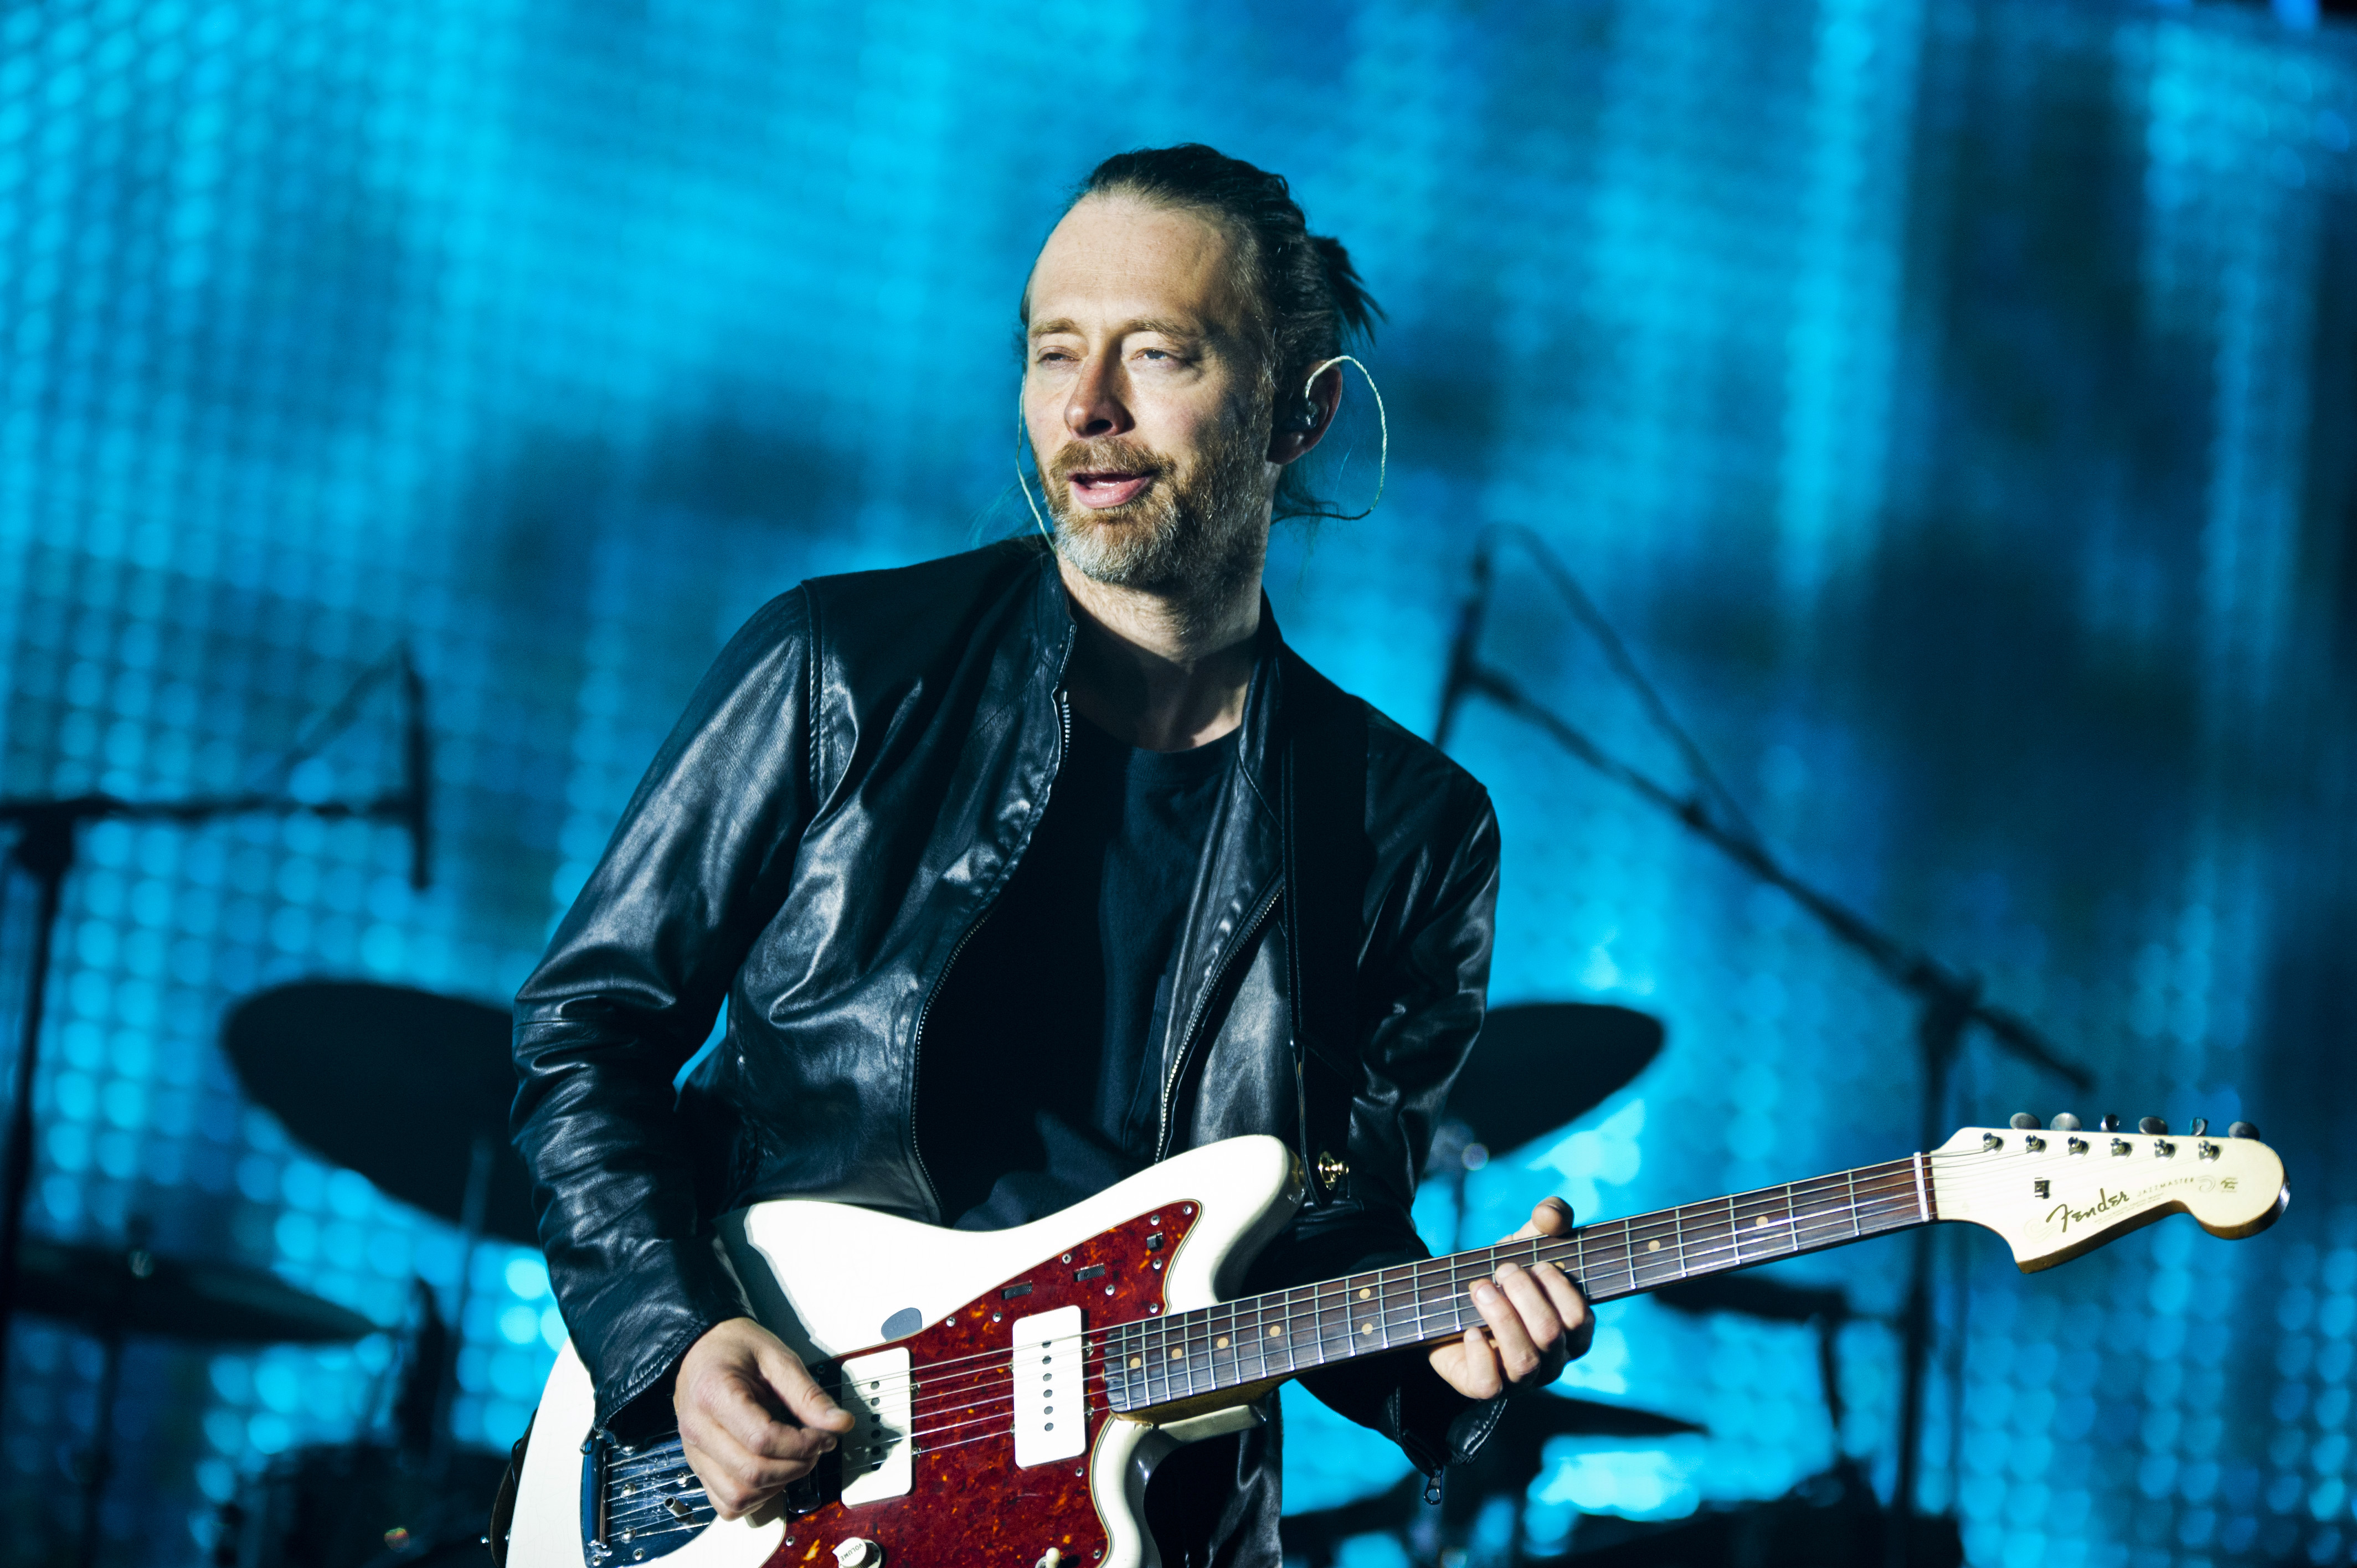 AMSTERDAM, NETHERLANDS - OCTOBER 14: Thom Yorke of Radiohead performs on stage at Ziggo Dome on October 14, 2012 in Amsterdam